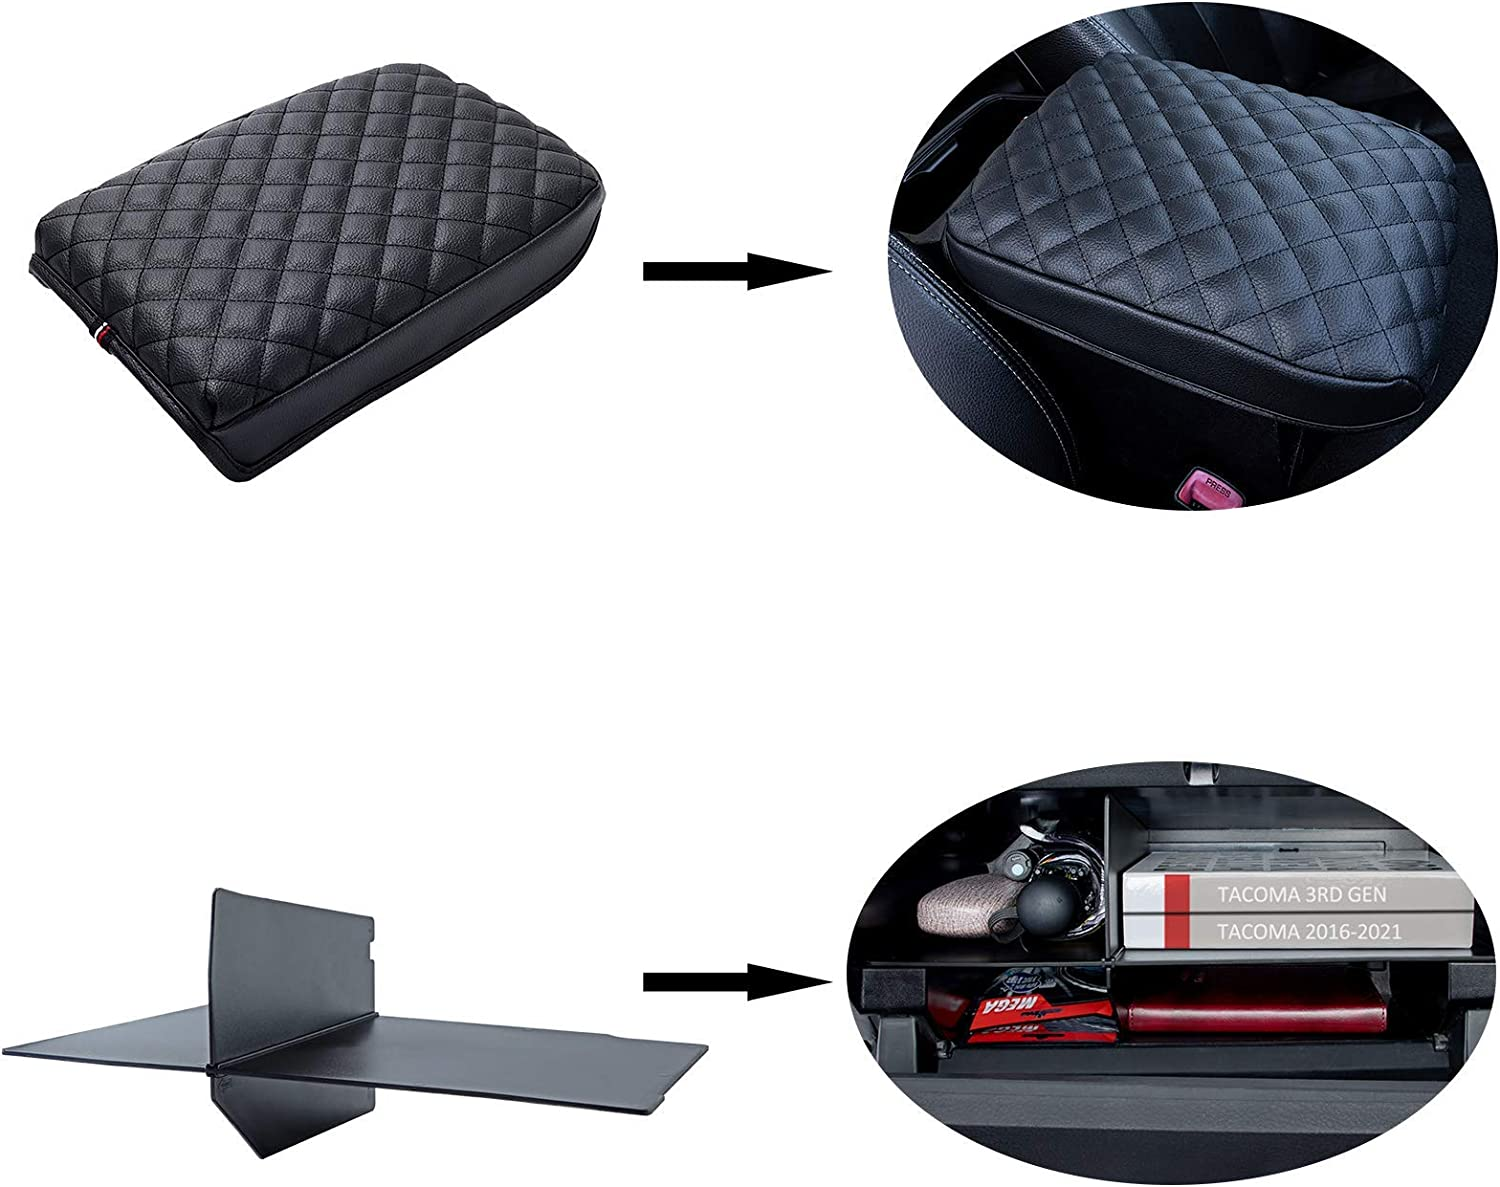 JKCOVER Max 42% OFF Purchase Glove Box Divider Organizer Compatible Armrest Cover and